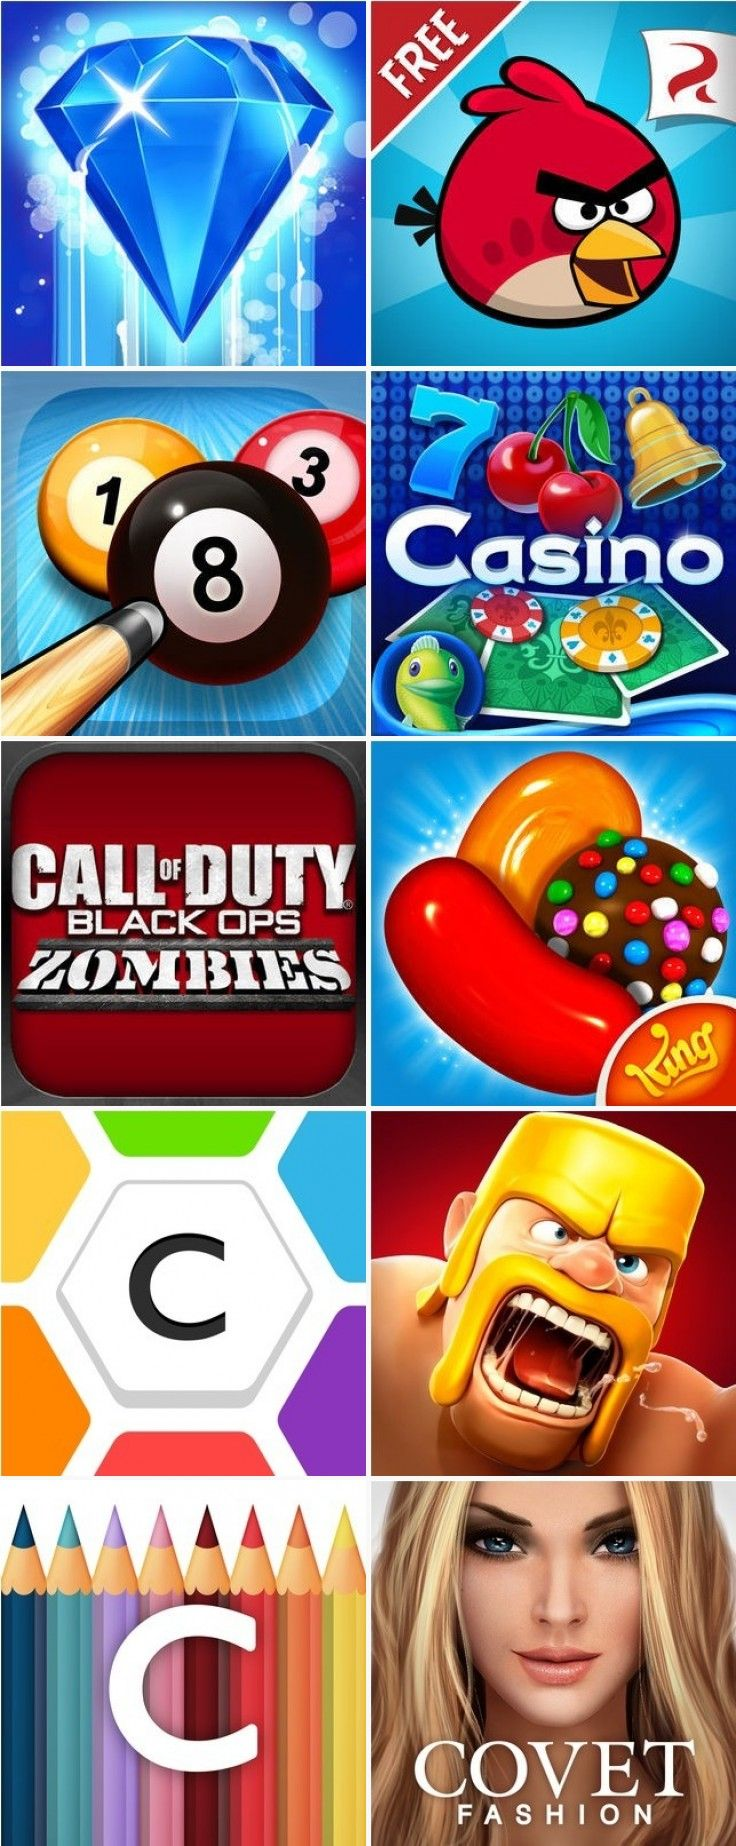 Fave game apps game app ipad apps app